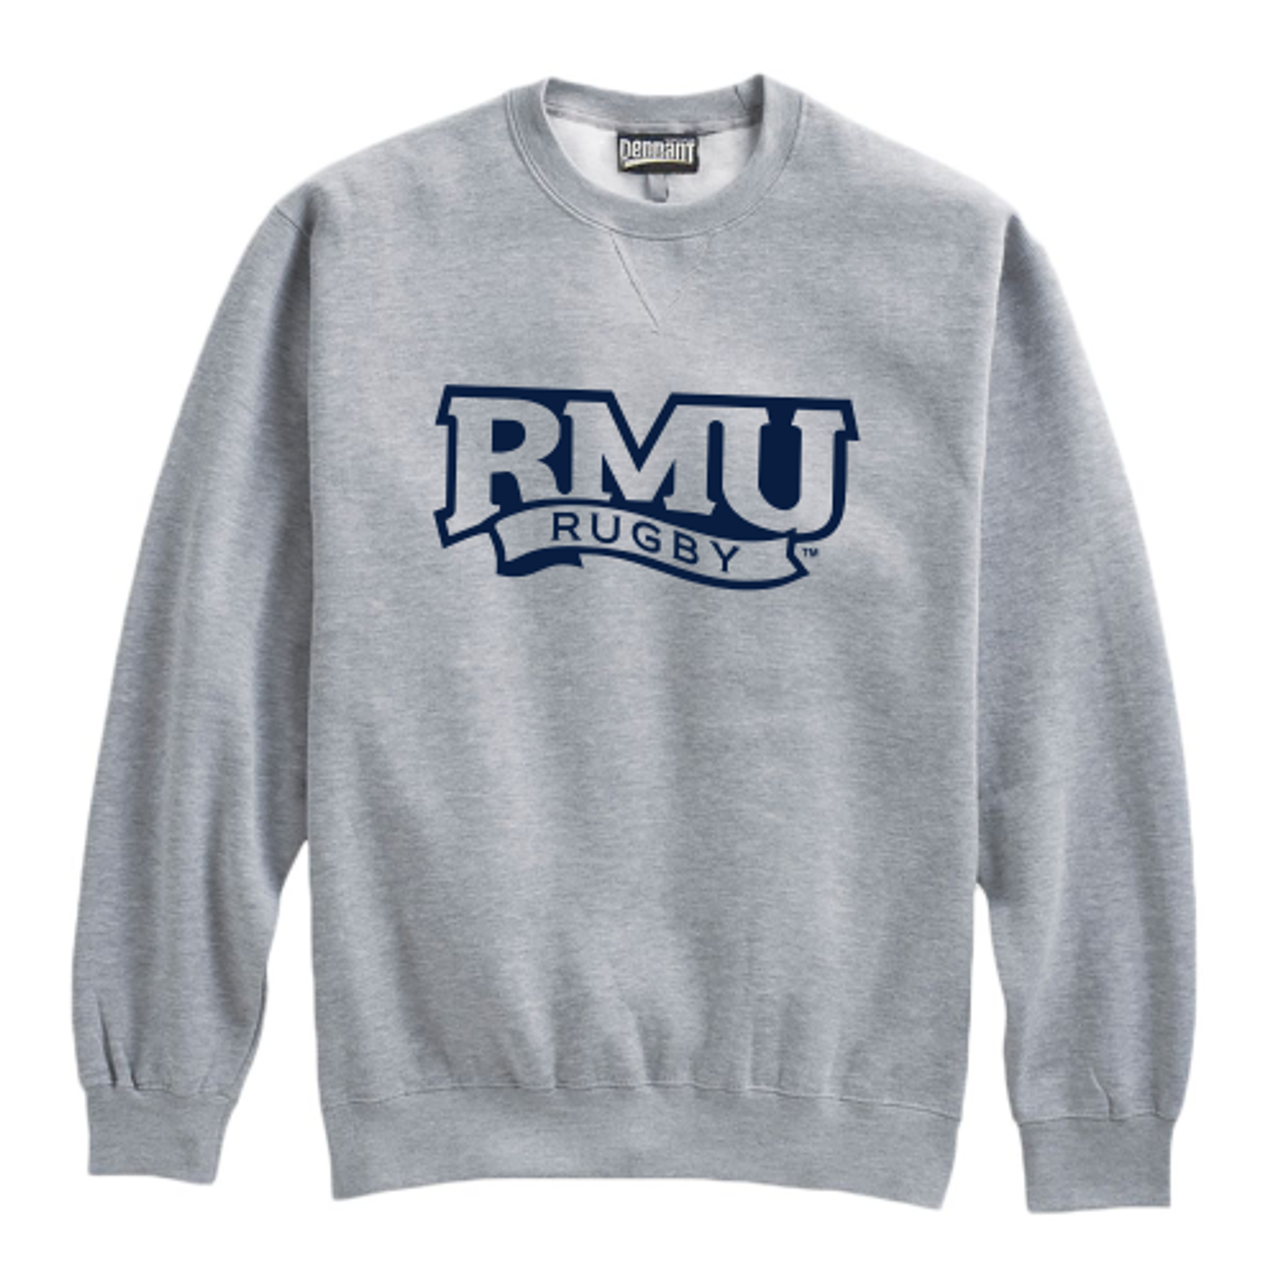 Robert Morris Fleece Crewneck, Gray